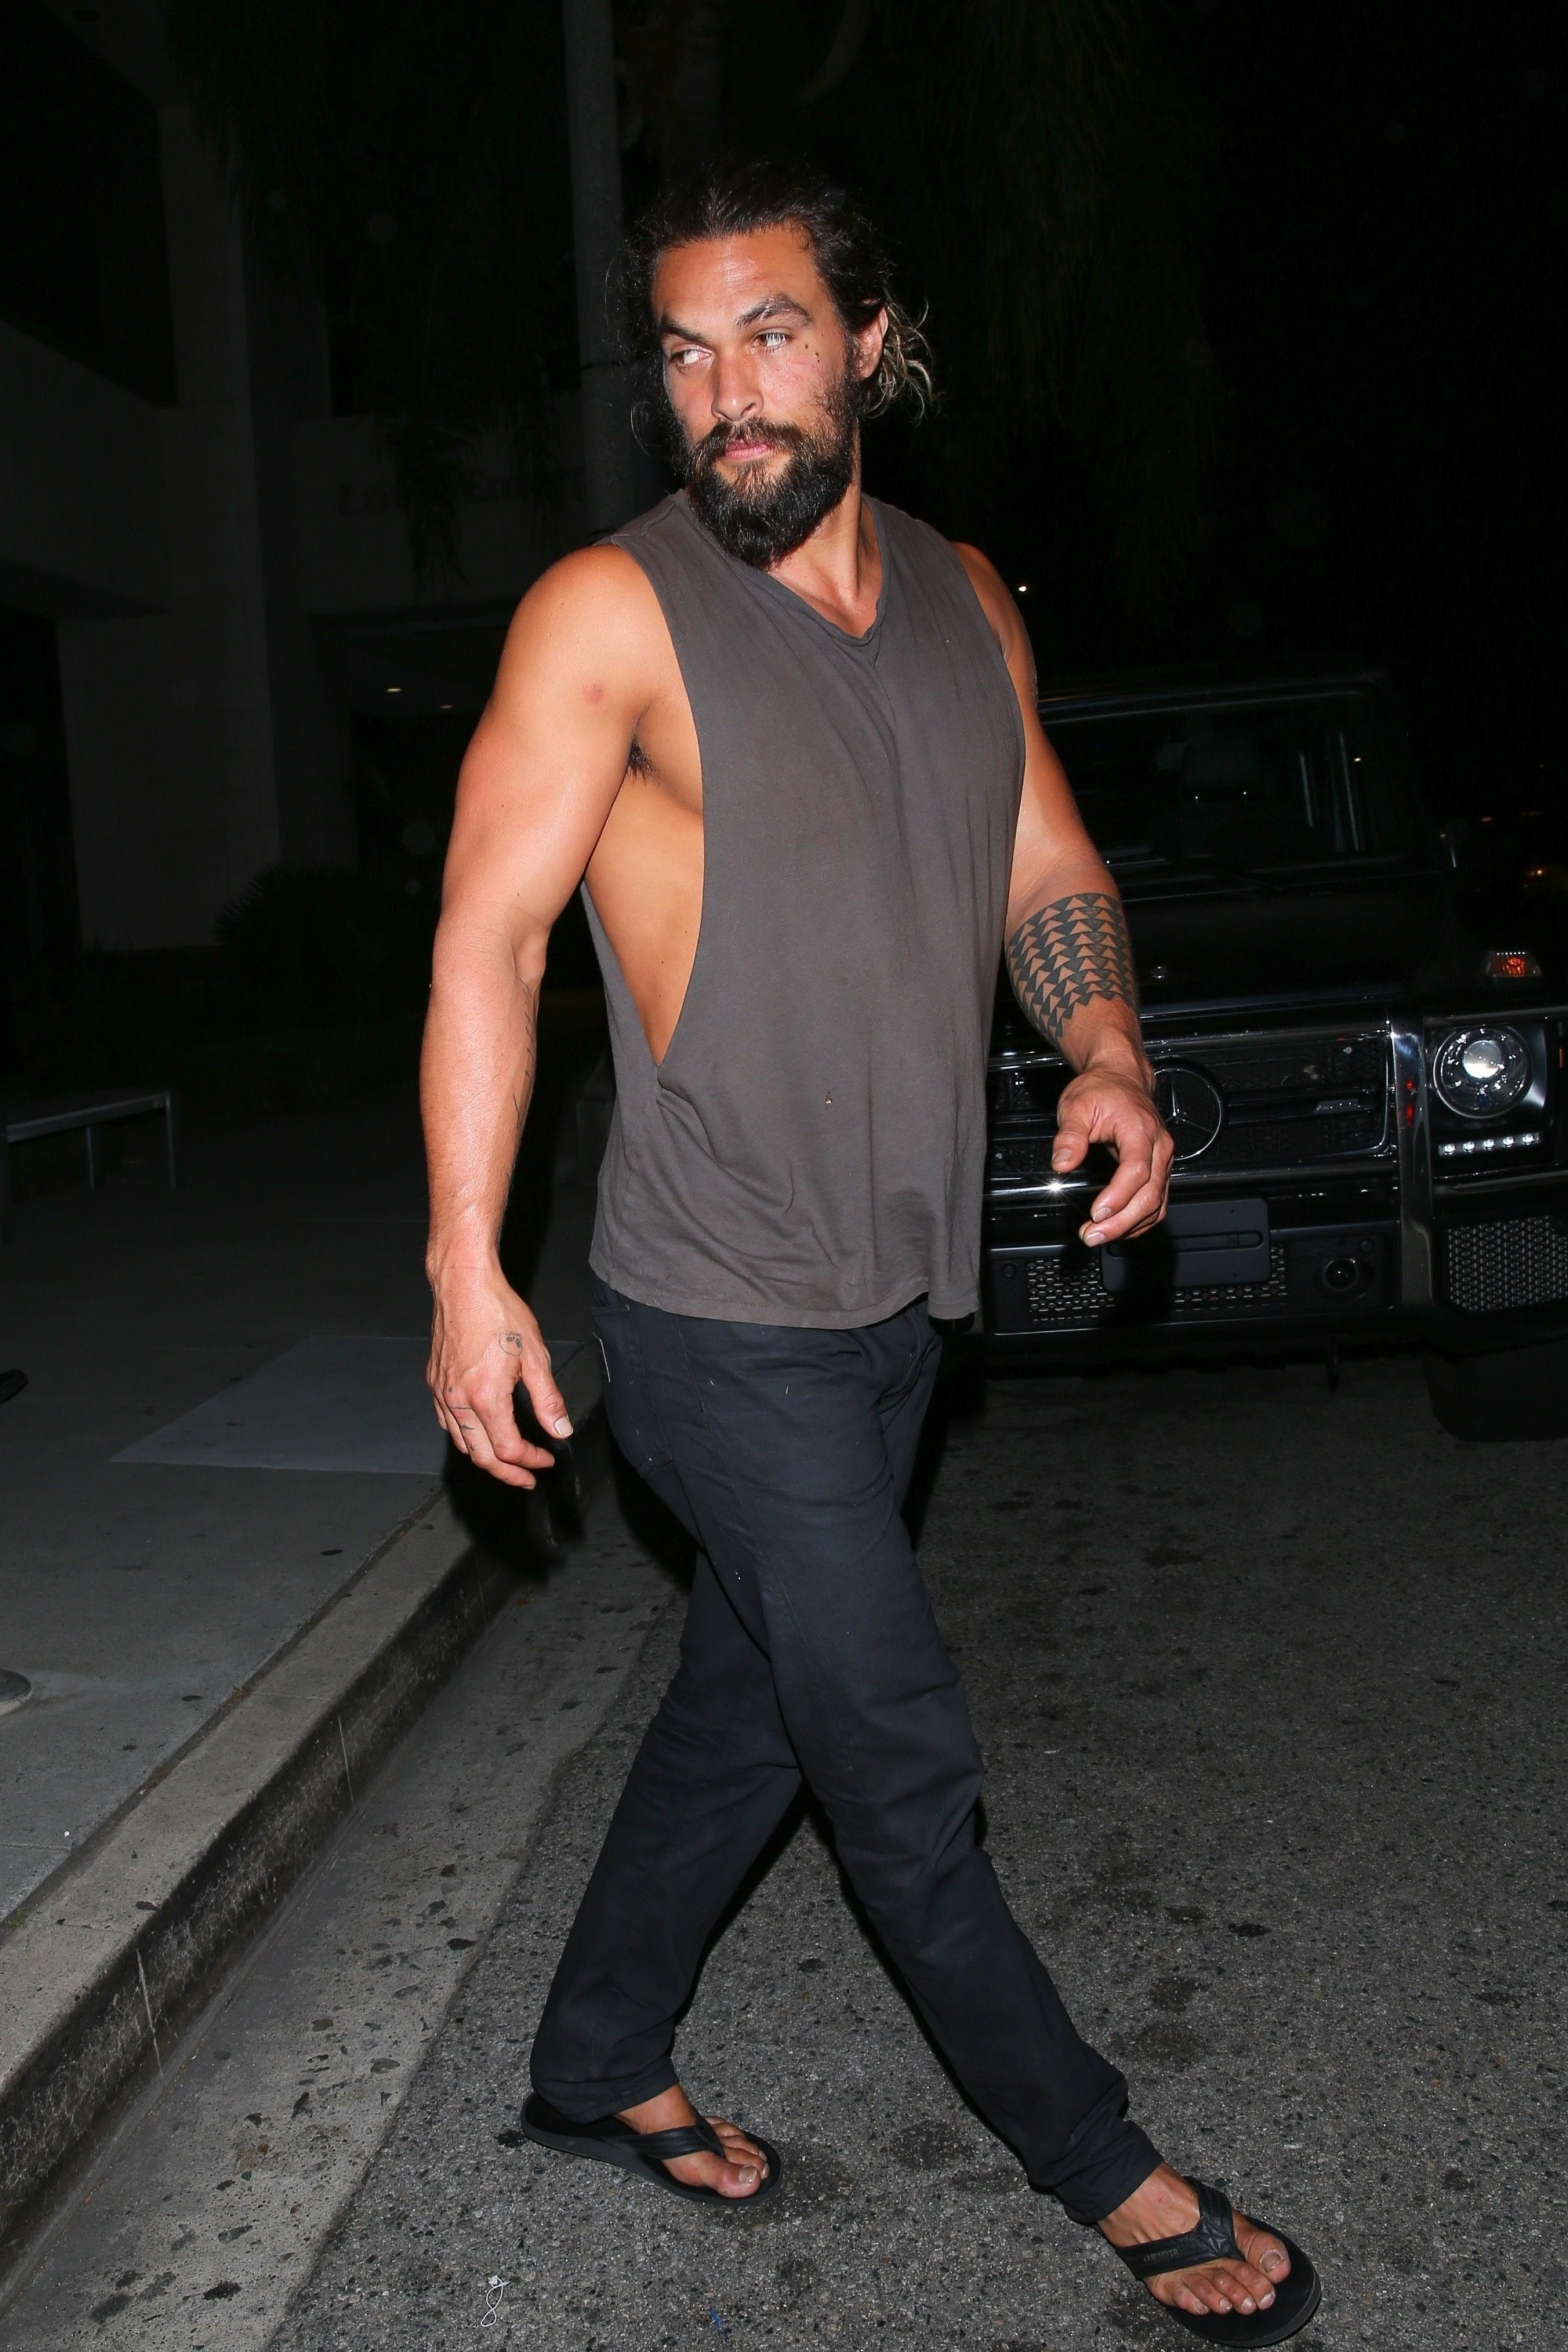 Feet Jason Momoa nudes (94 photo), Leaked